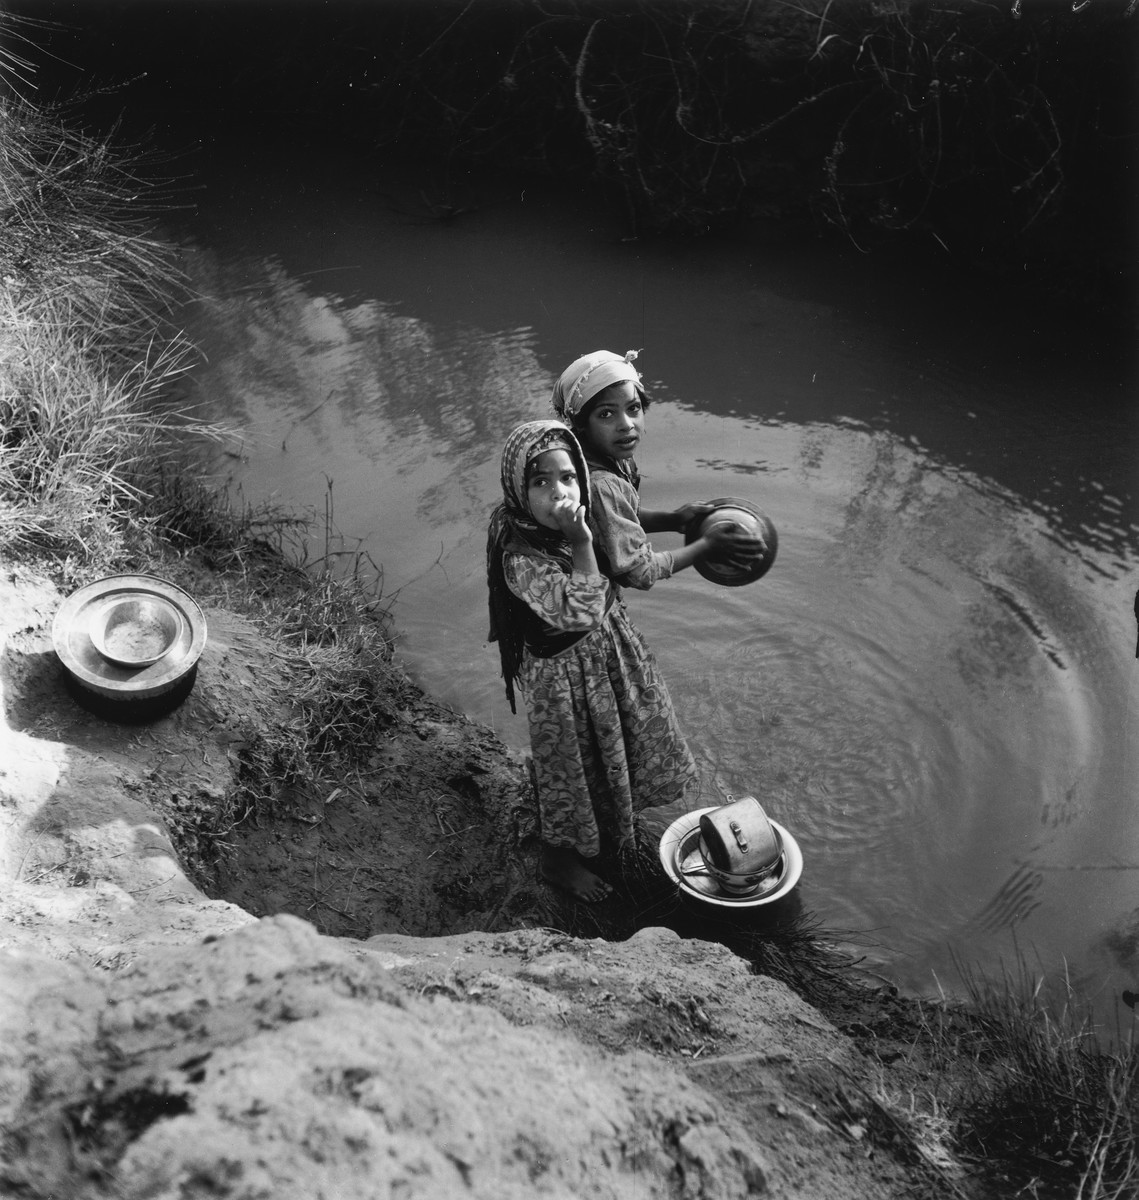 Two Morrocan Jewish girls wash dishes in a lake or river in the Los Arenas camp while waiting to immigrate to Palestine.